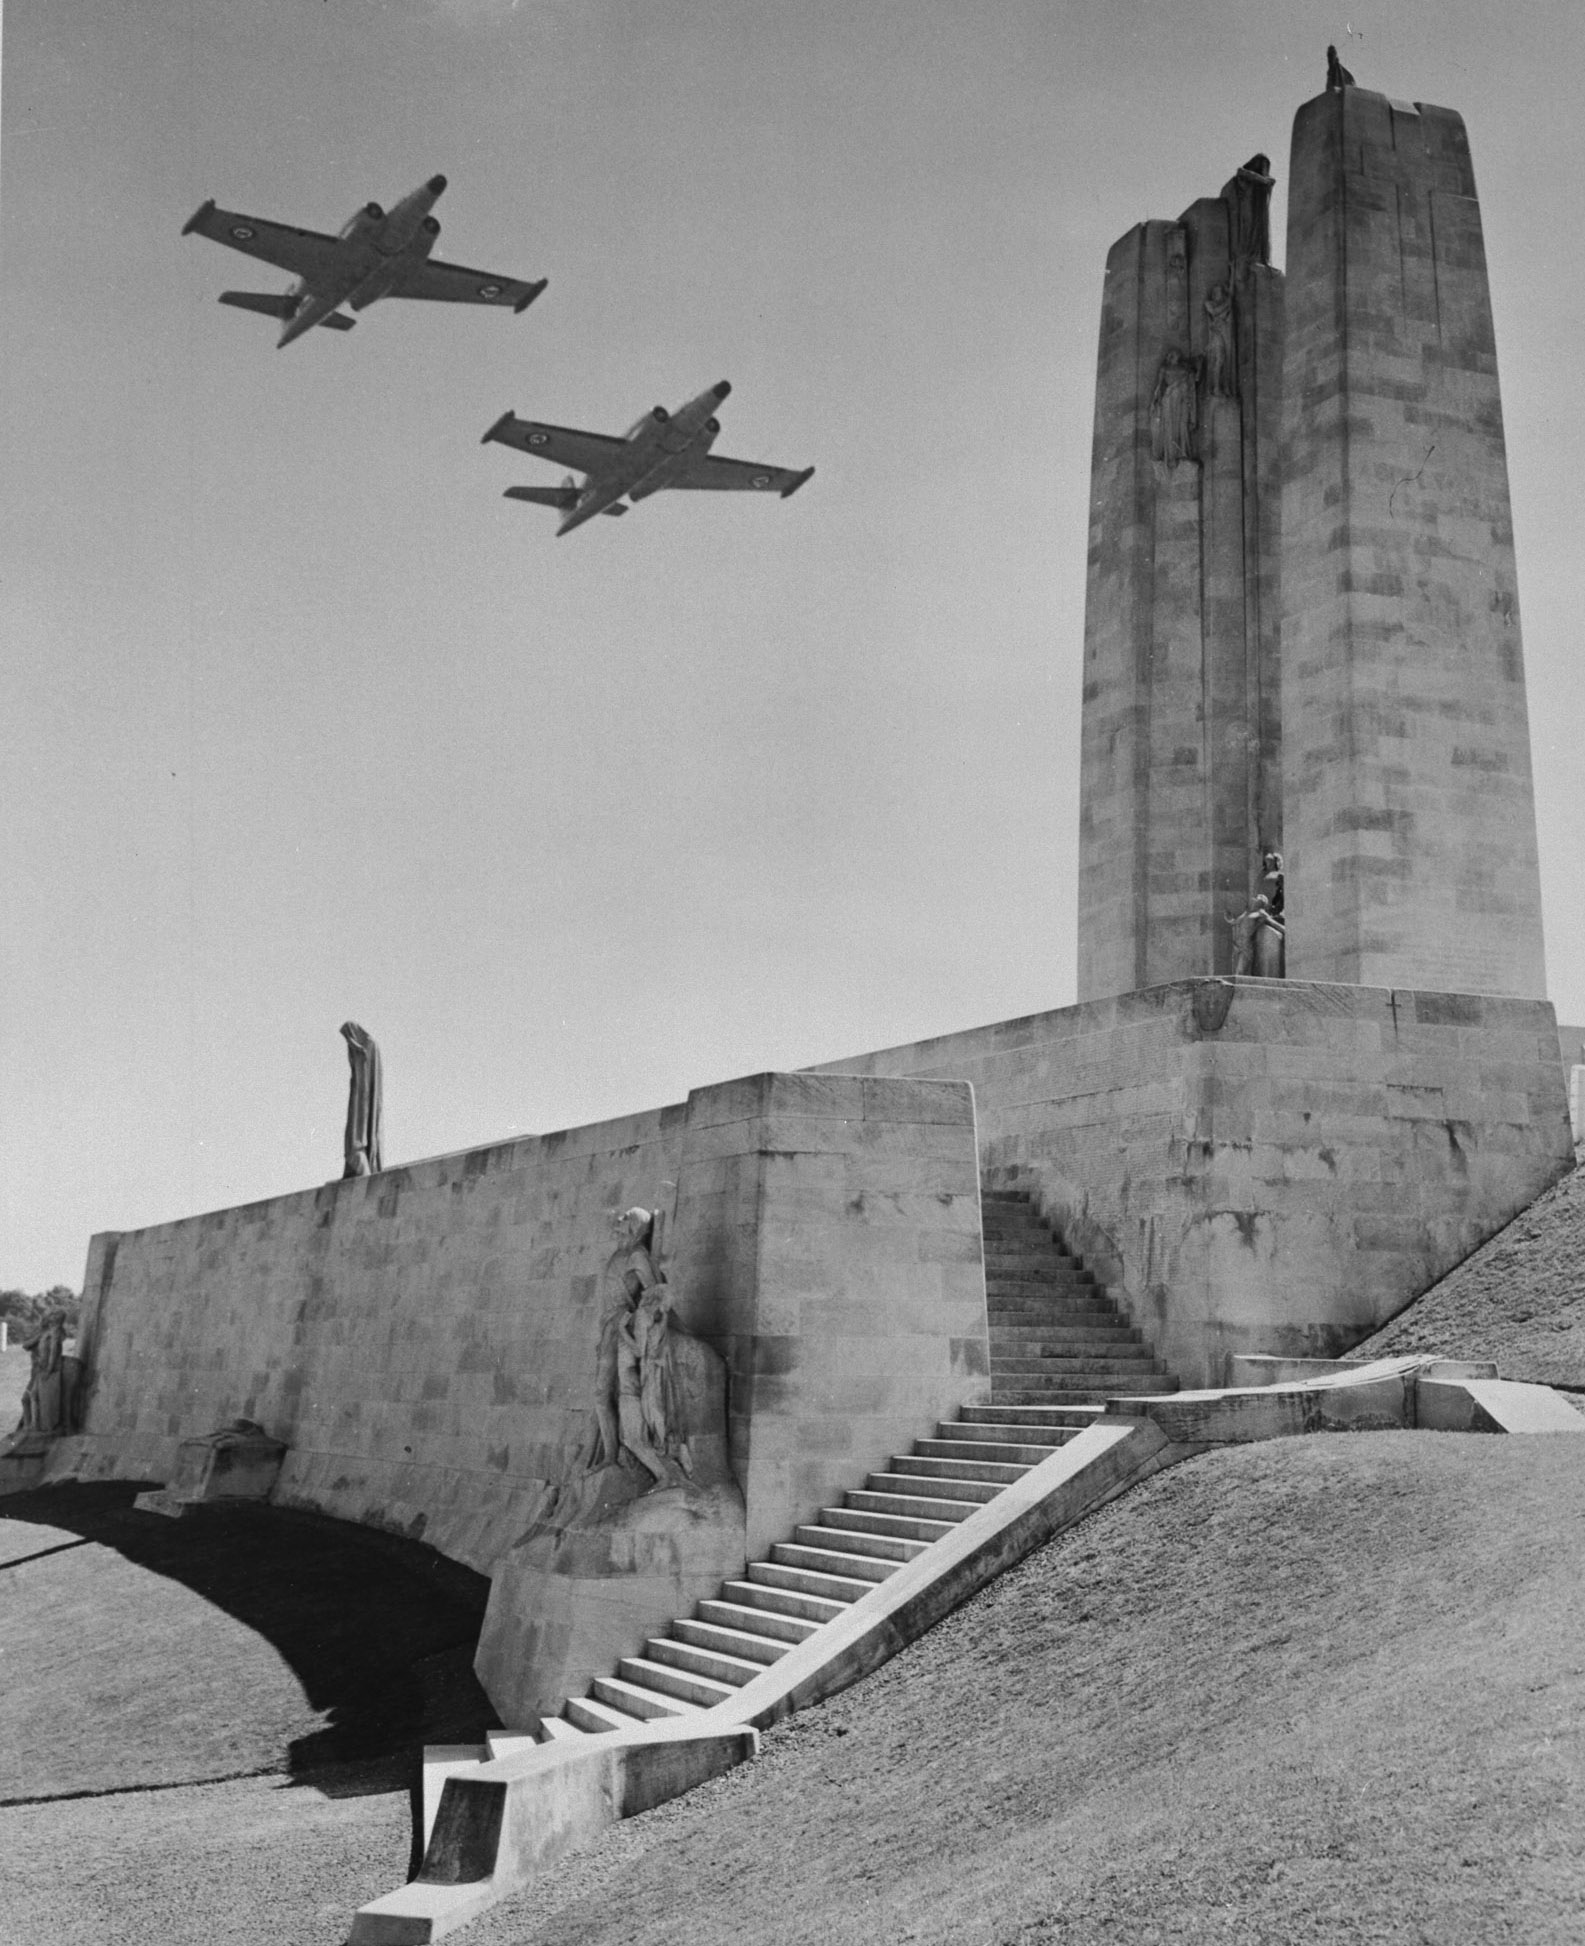 A black and white photo of two fighter aircraft flying close to a large white monument on a hillside.